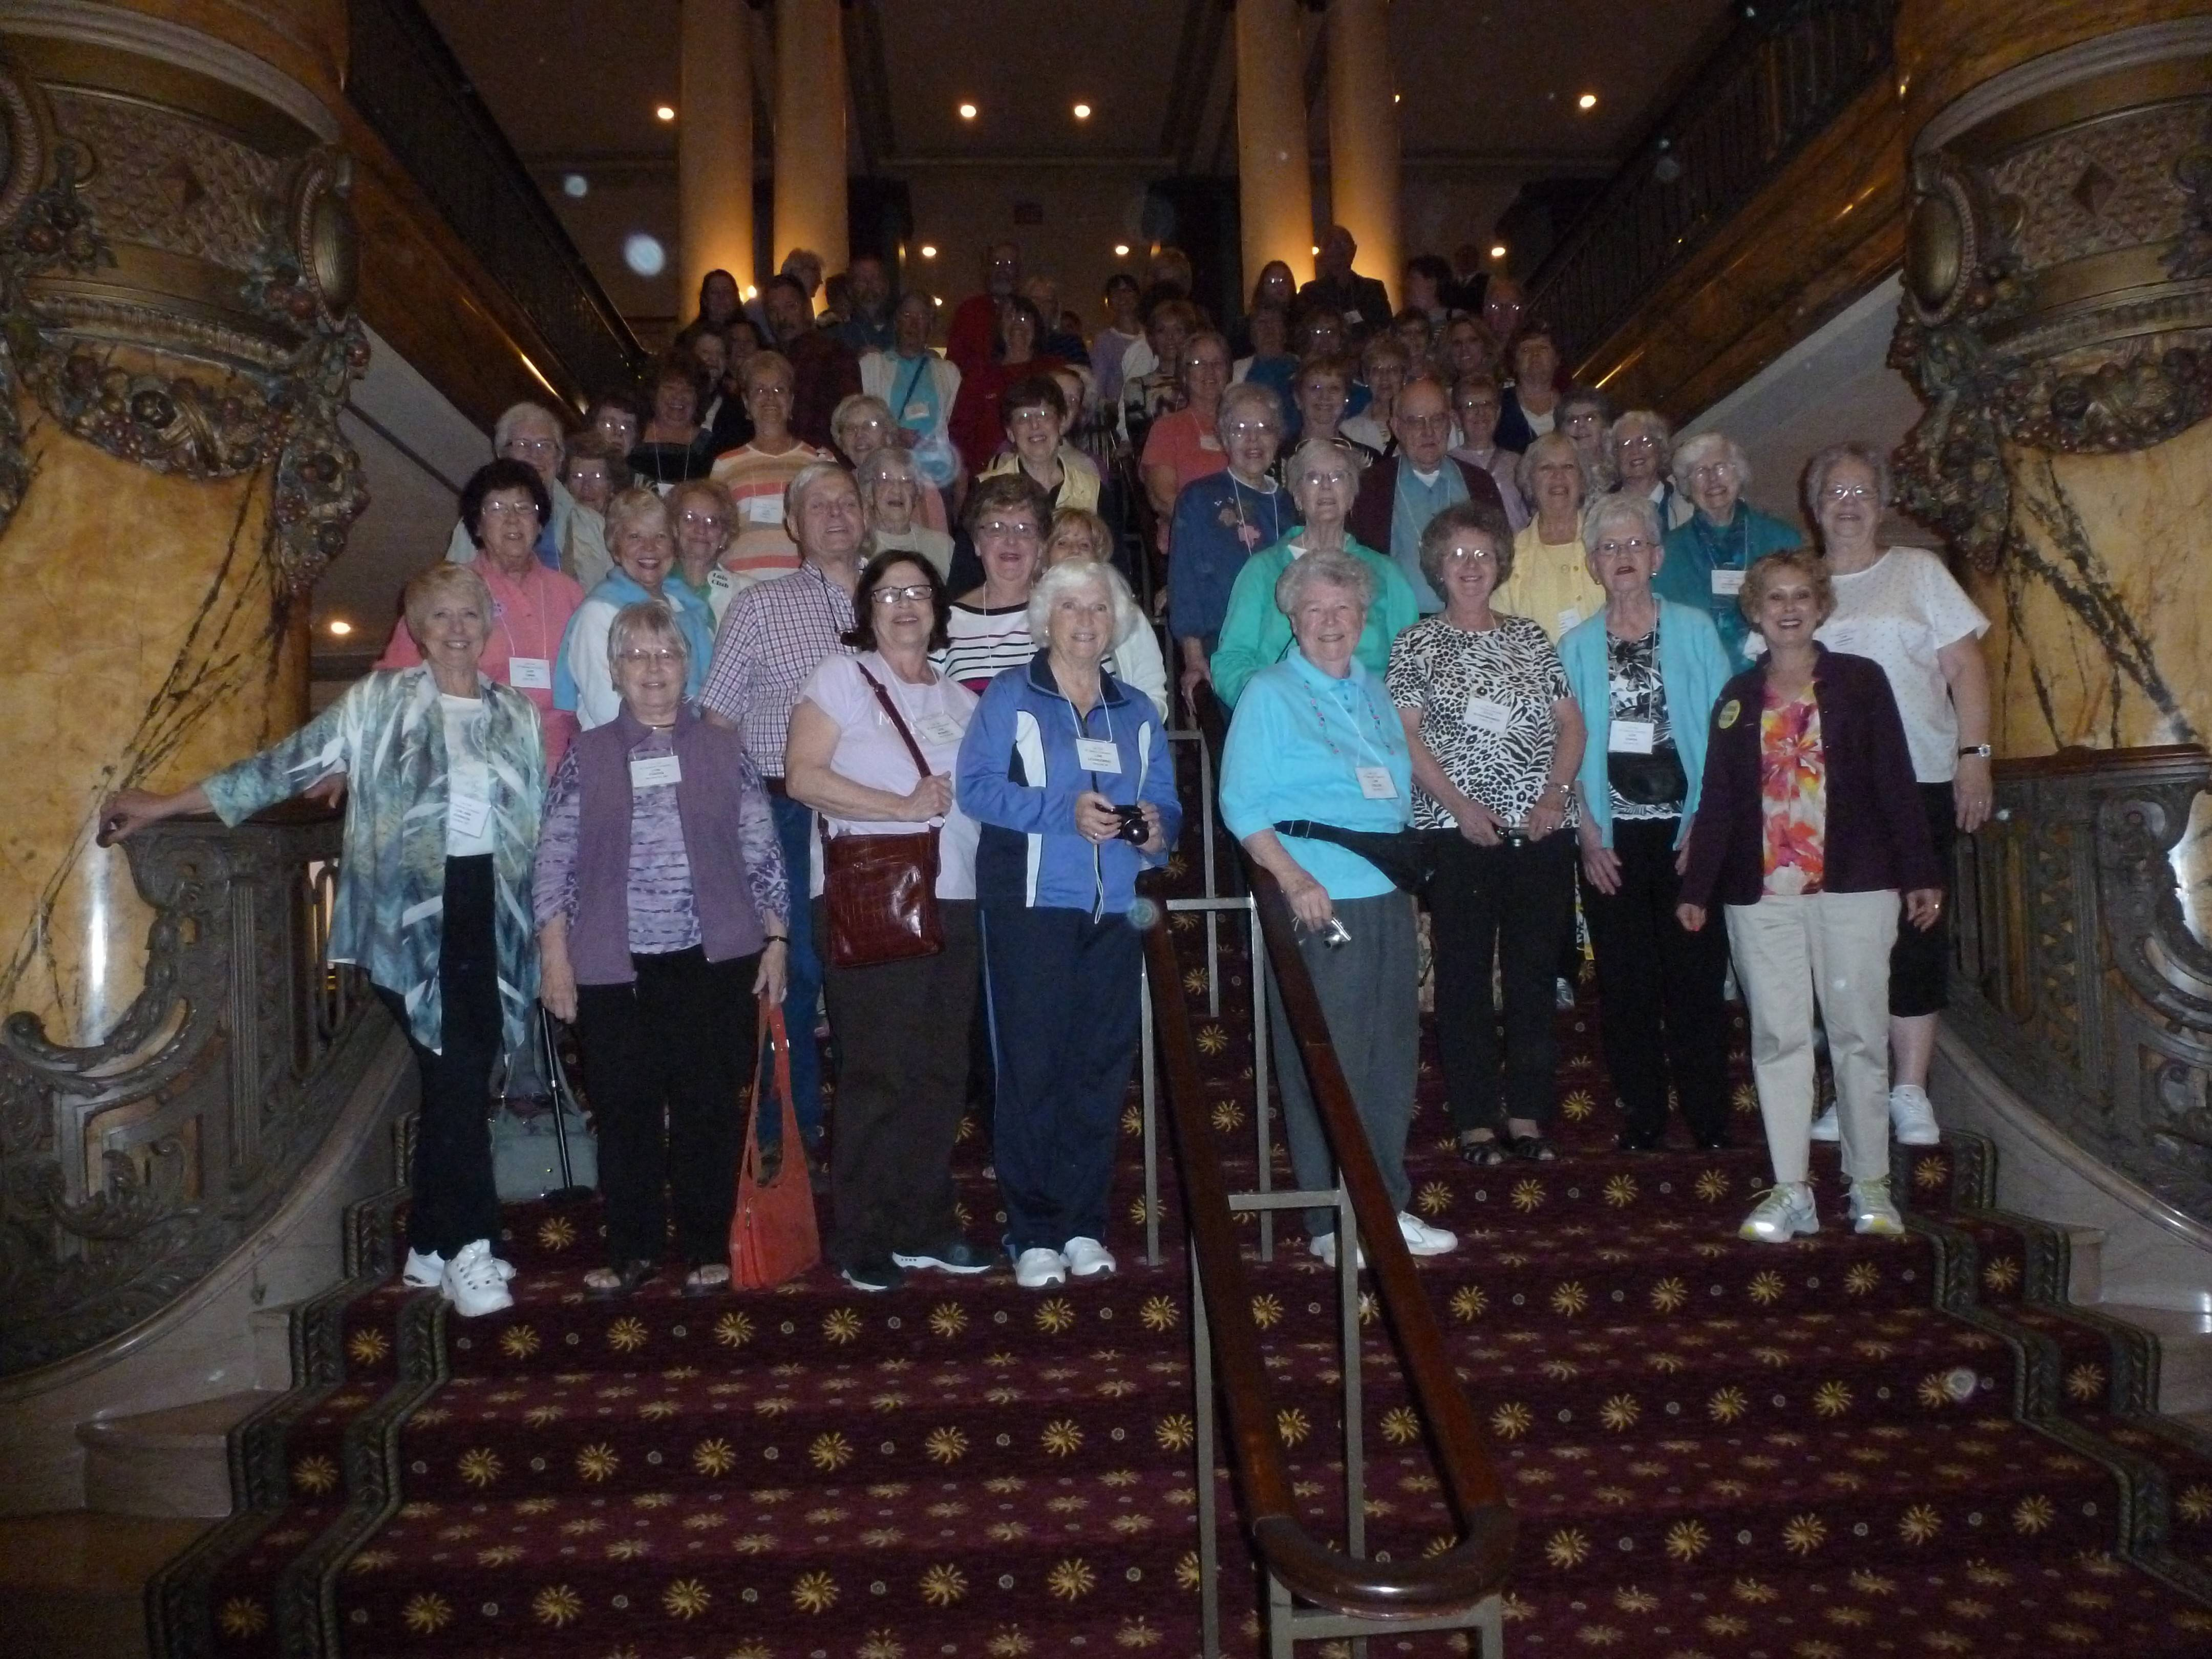 Members of the Lois Club pose for a photograph after high tea at The Jefferson Hotel in Richmond, Va., during their annual international convention in April. The club grows older and smaller as younger Loises are hard to find.